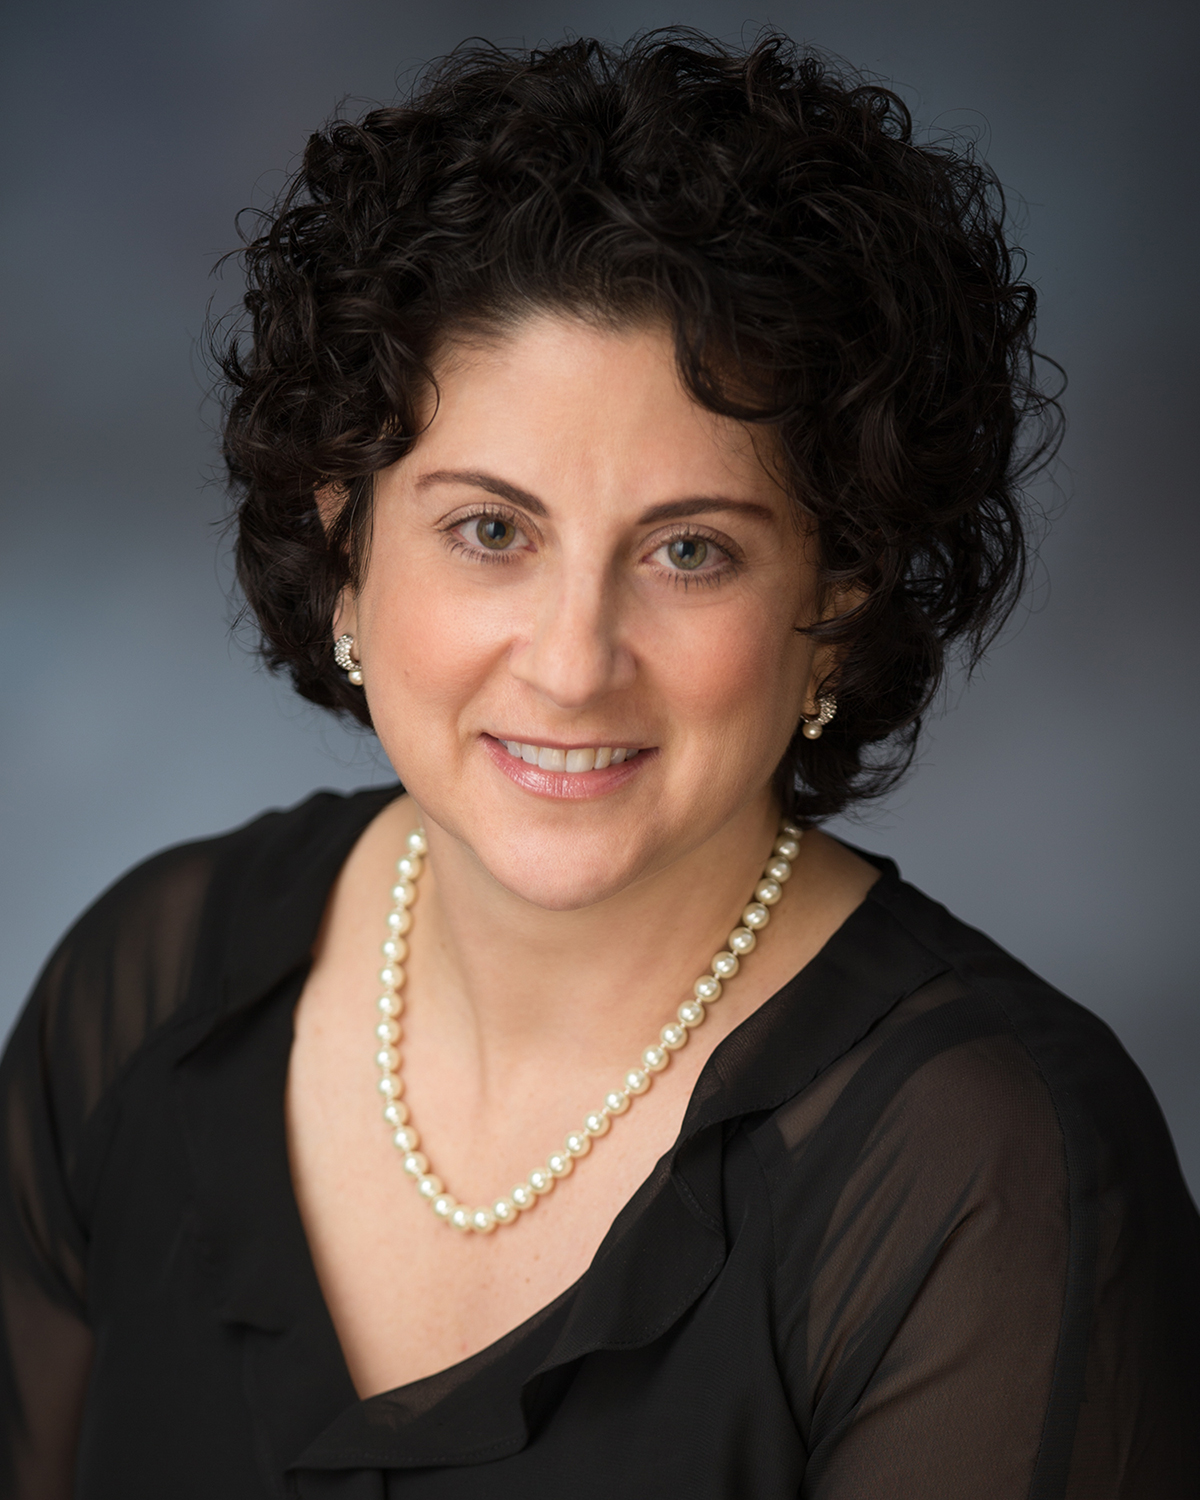 Lisa J. Farkouh, MD - Physician and Surgeon, Maternal-Fetal Medicine, Portland, OR